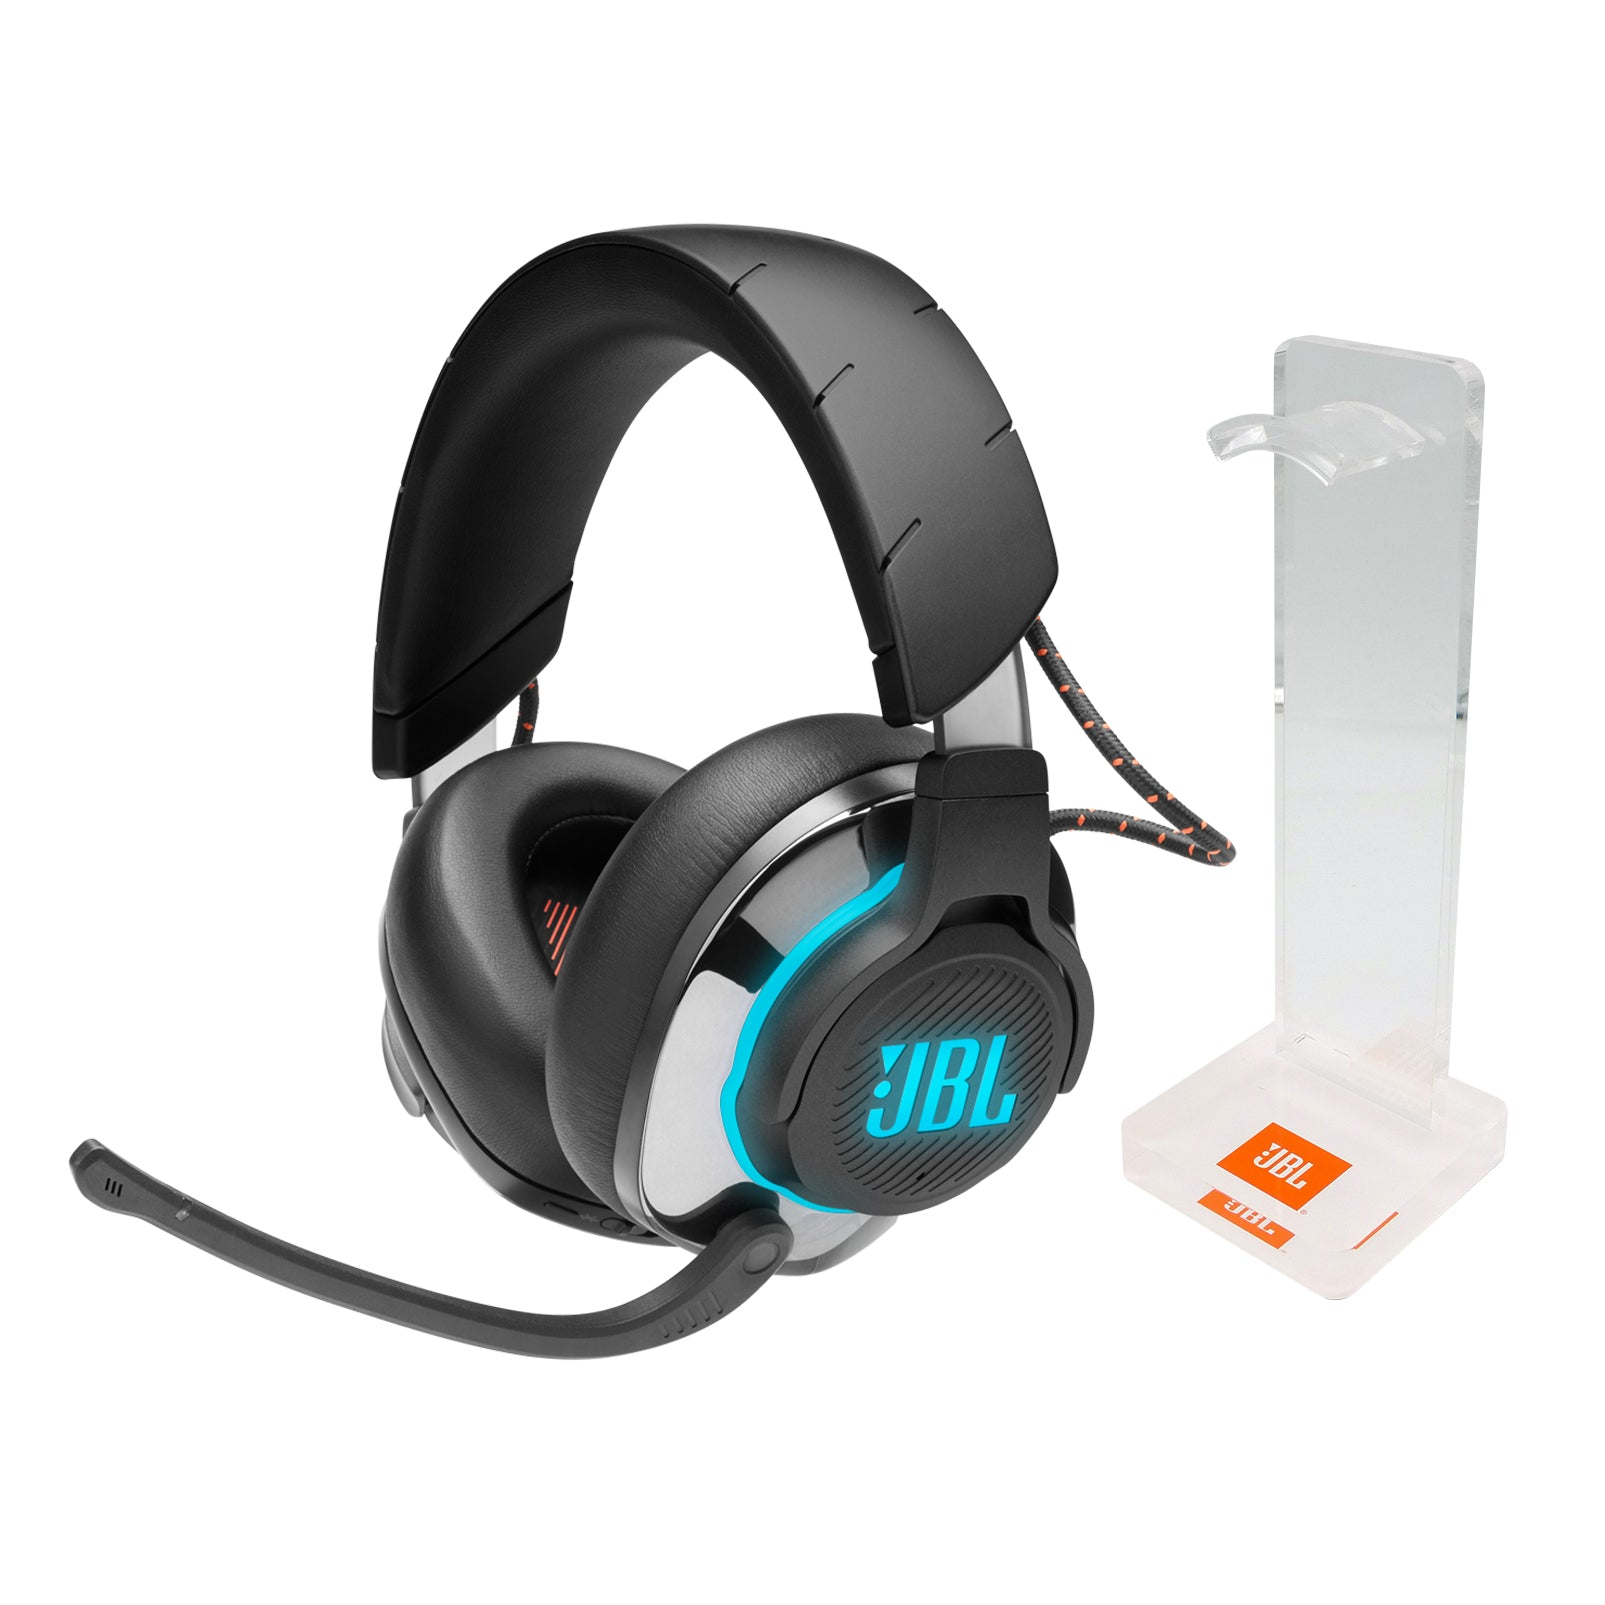 JBL Quantum 800 + JBL Headphone Stand